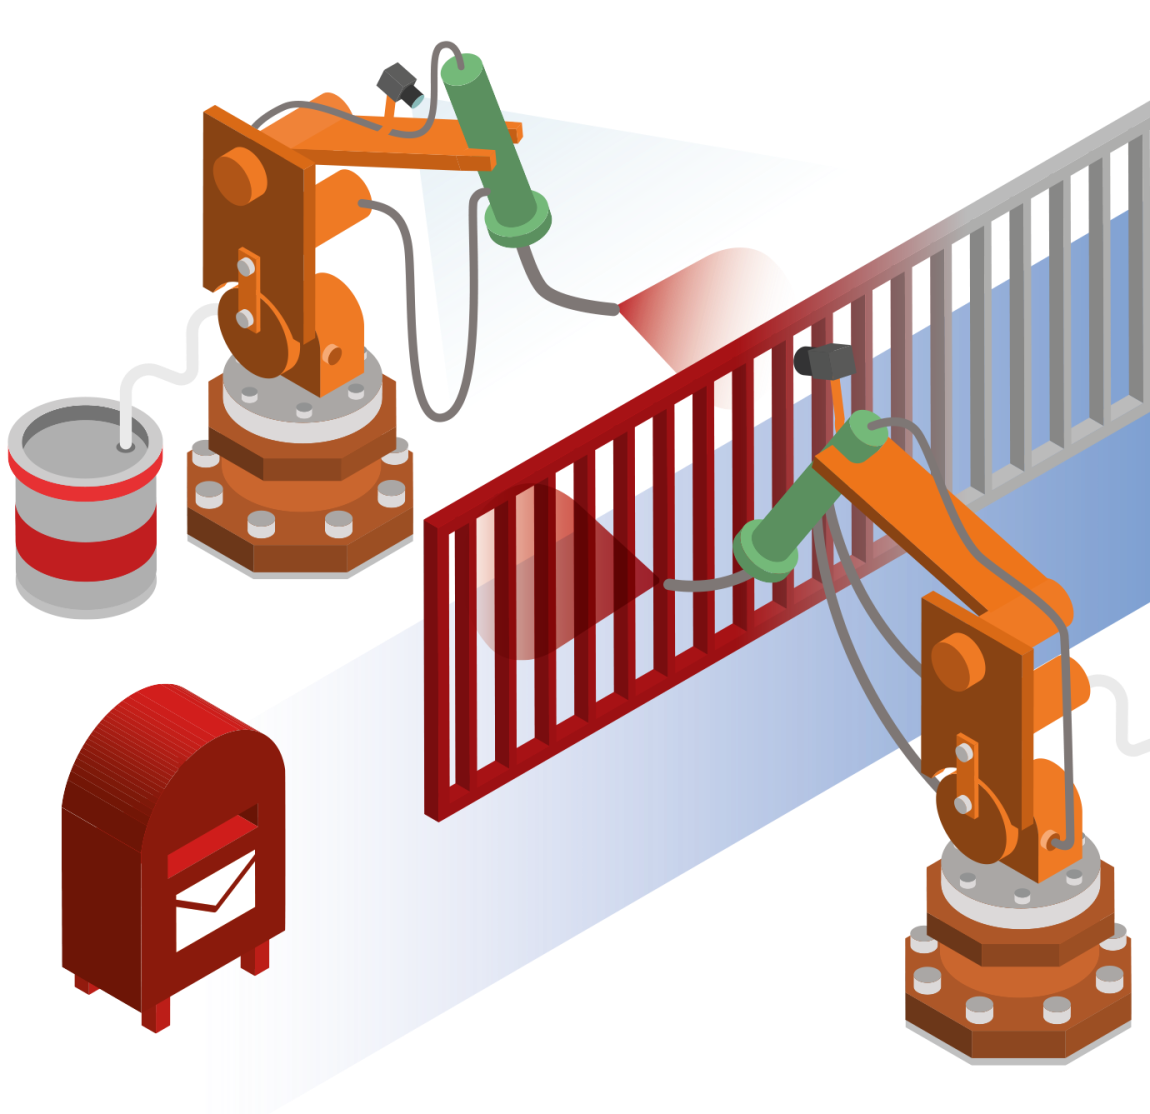 Factory clipart industrial product. Image processing in industry